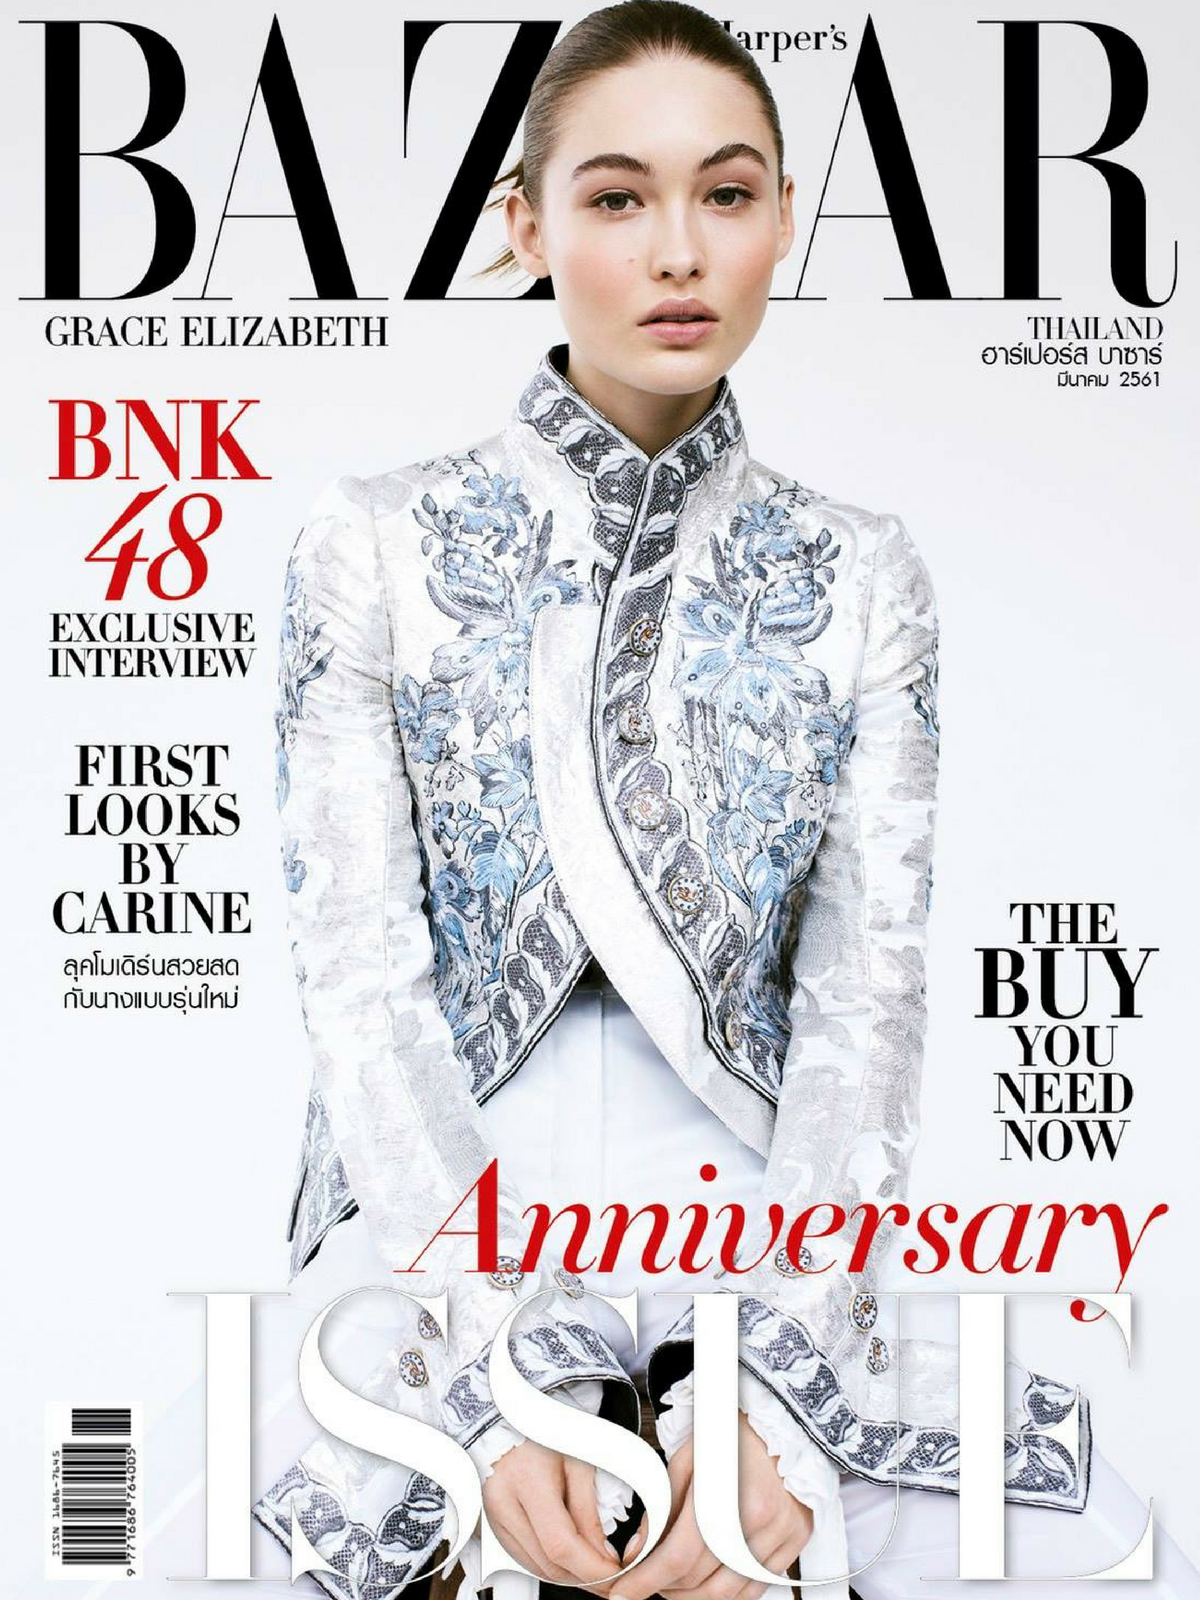 harpers bazaar thailand cover march 2018